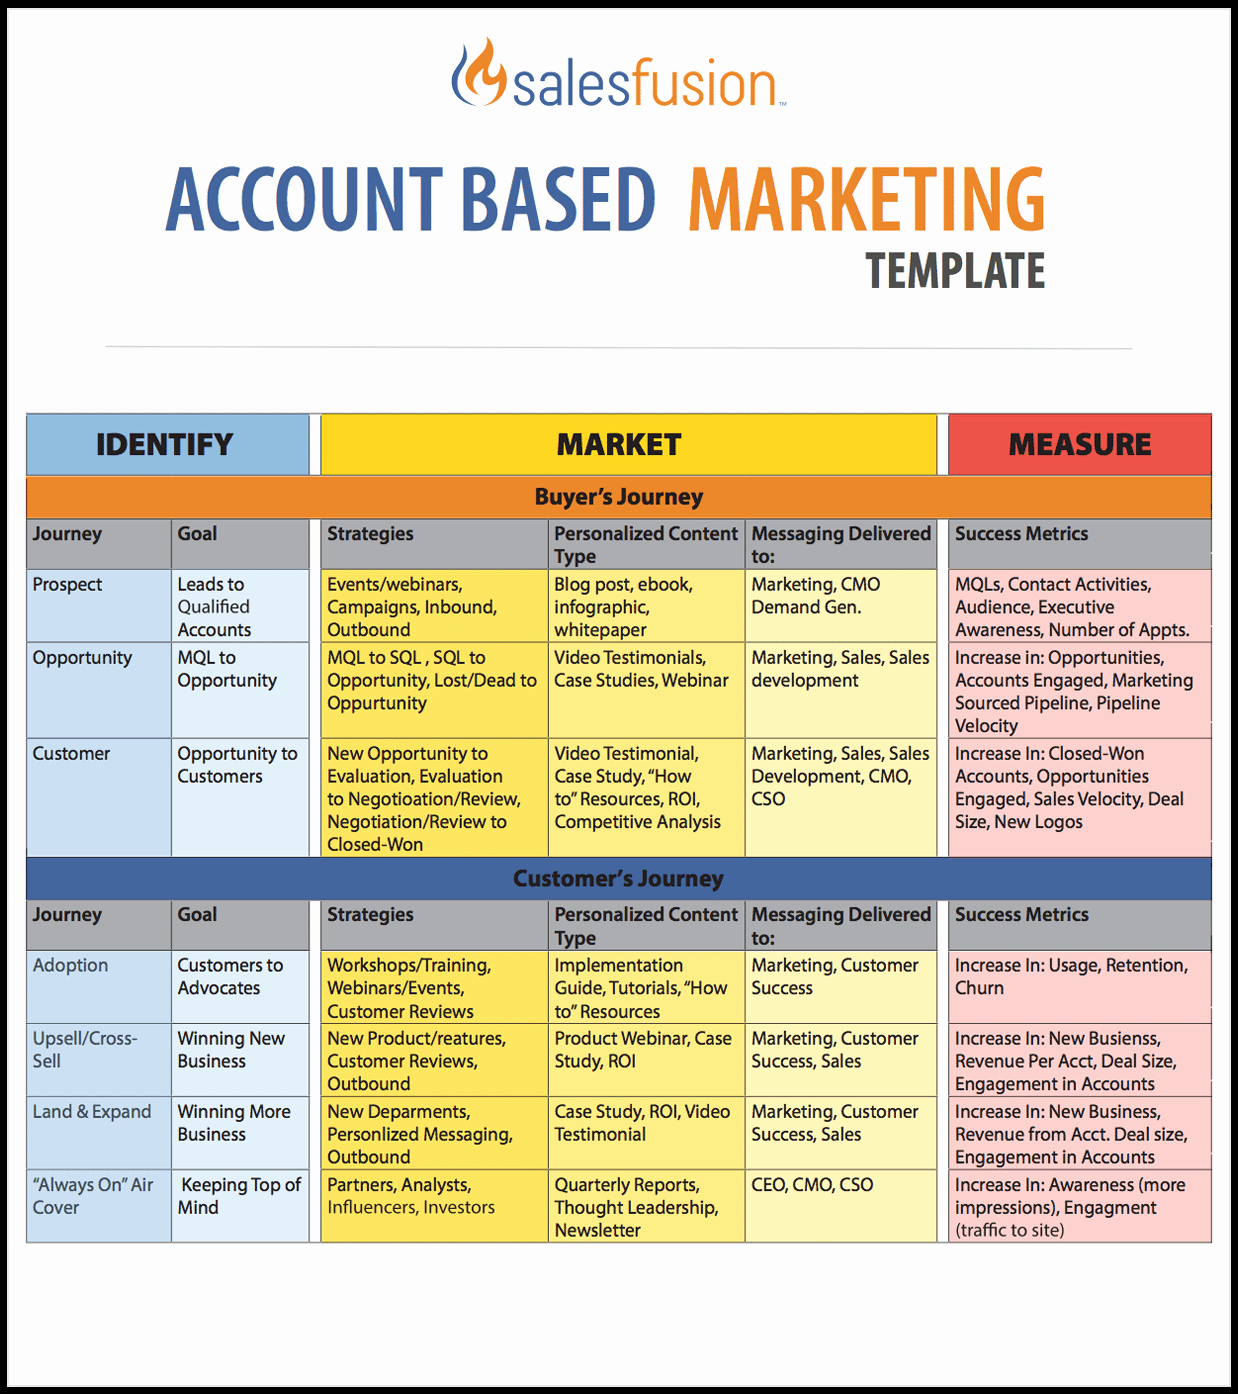 Account Based Marketing Template